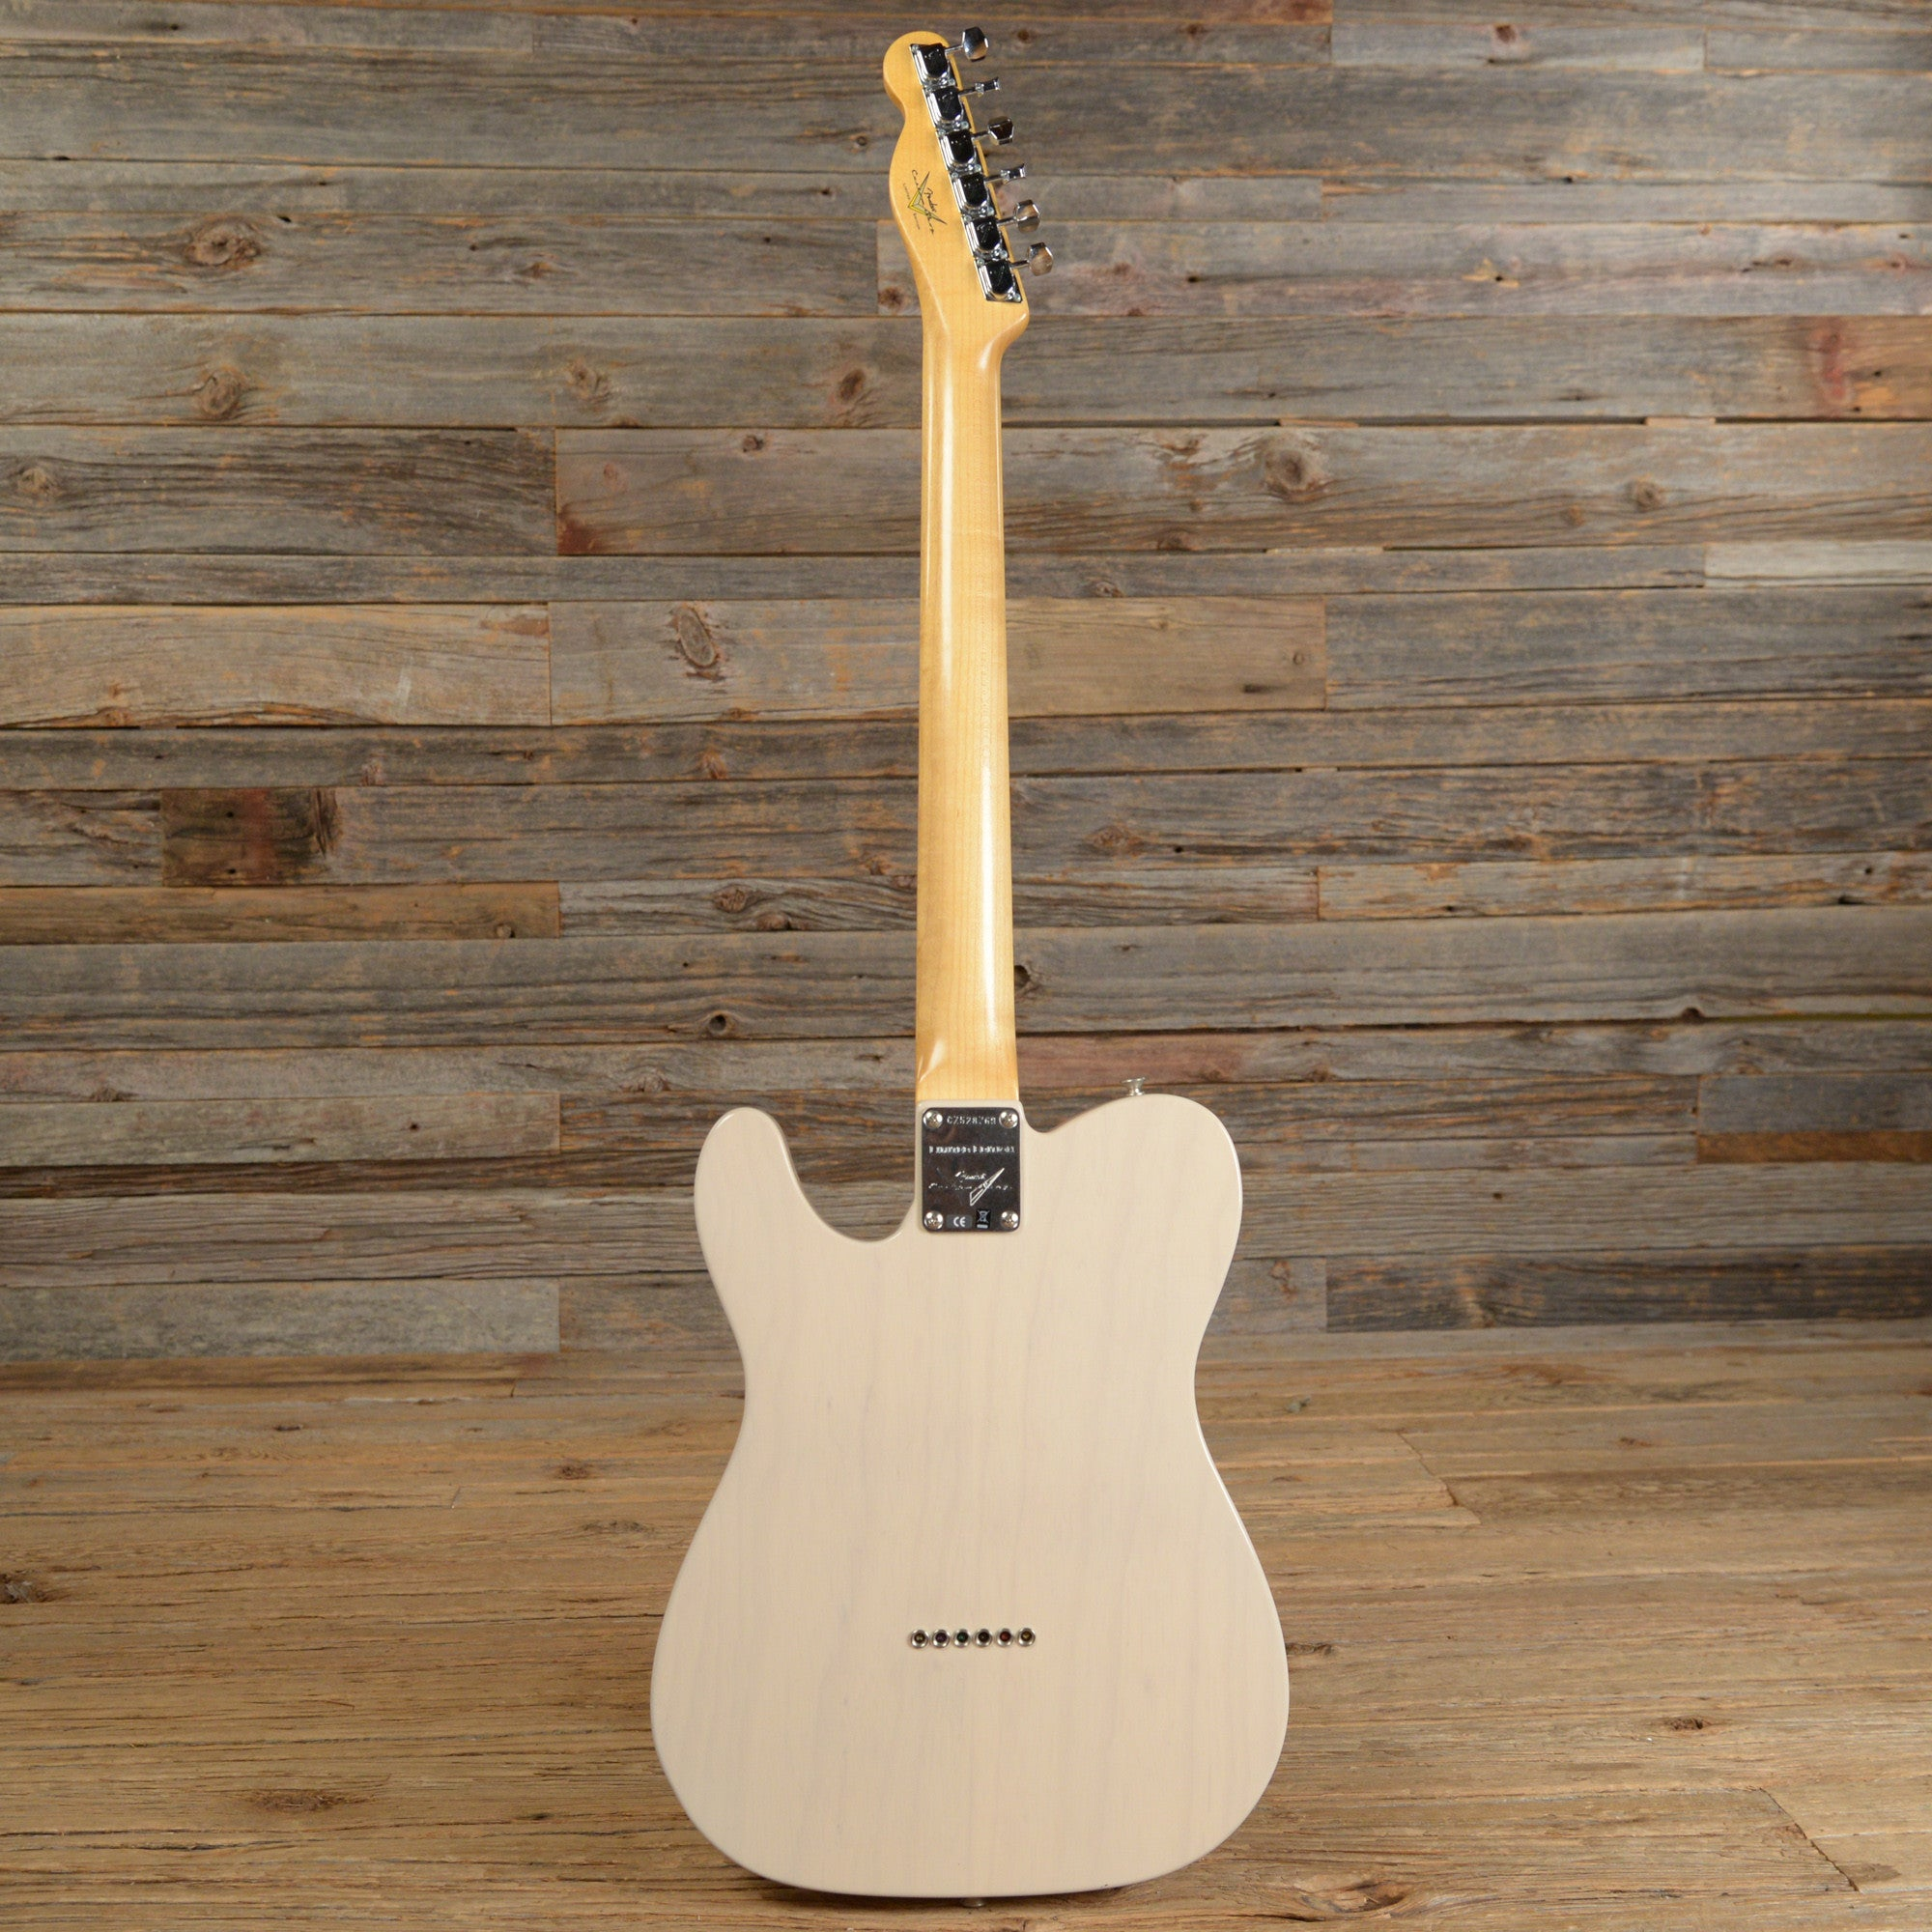 Phone service for home small business amp -  Fender Custom Shop Limited Edition 1967 Smuggler S Telecaster Closet Classic Mn Blonde 2016 S769